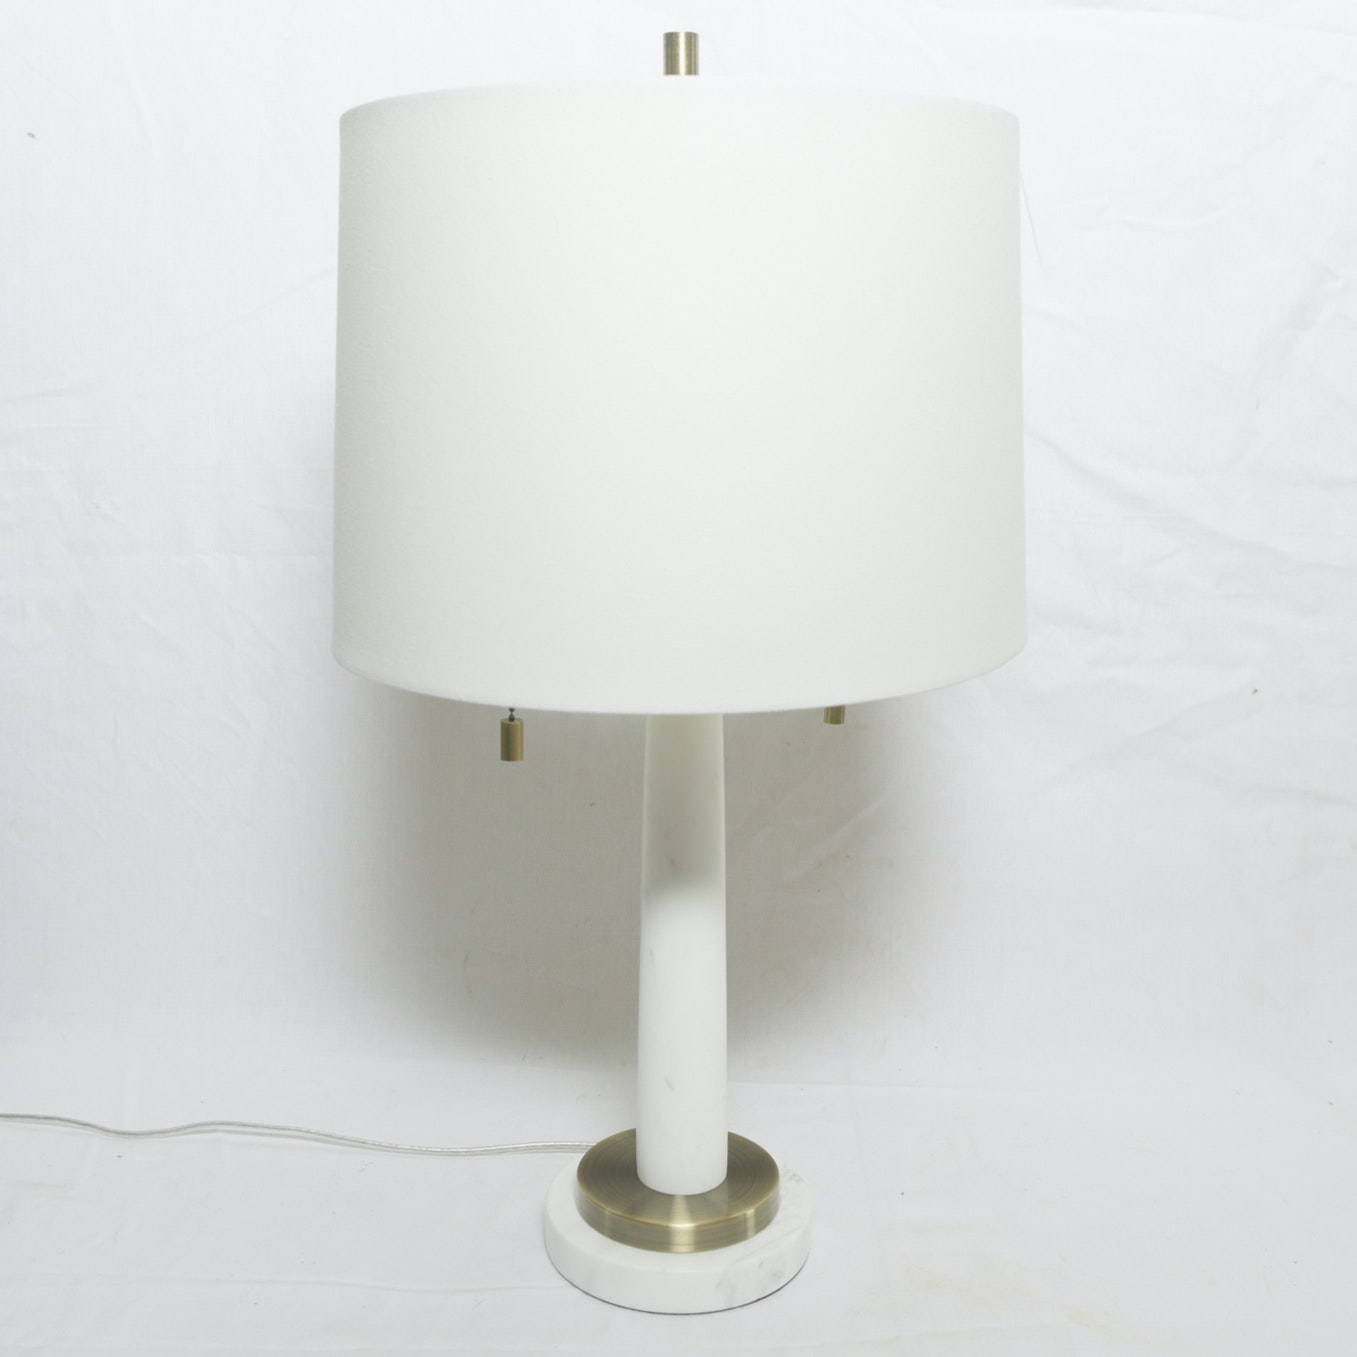 White Cylindrical Two-Light Table Lamp with Gold Tone Finial and Accented Base